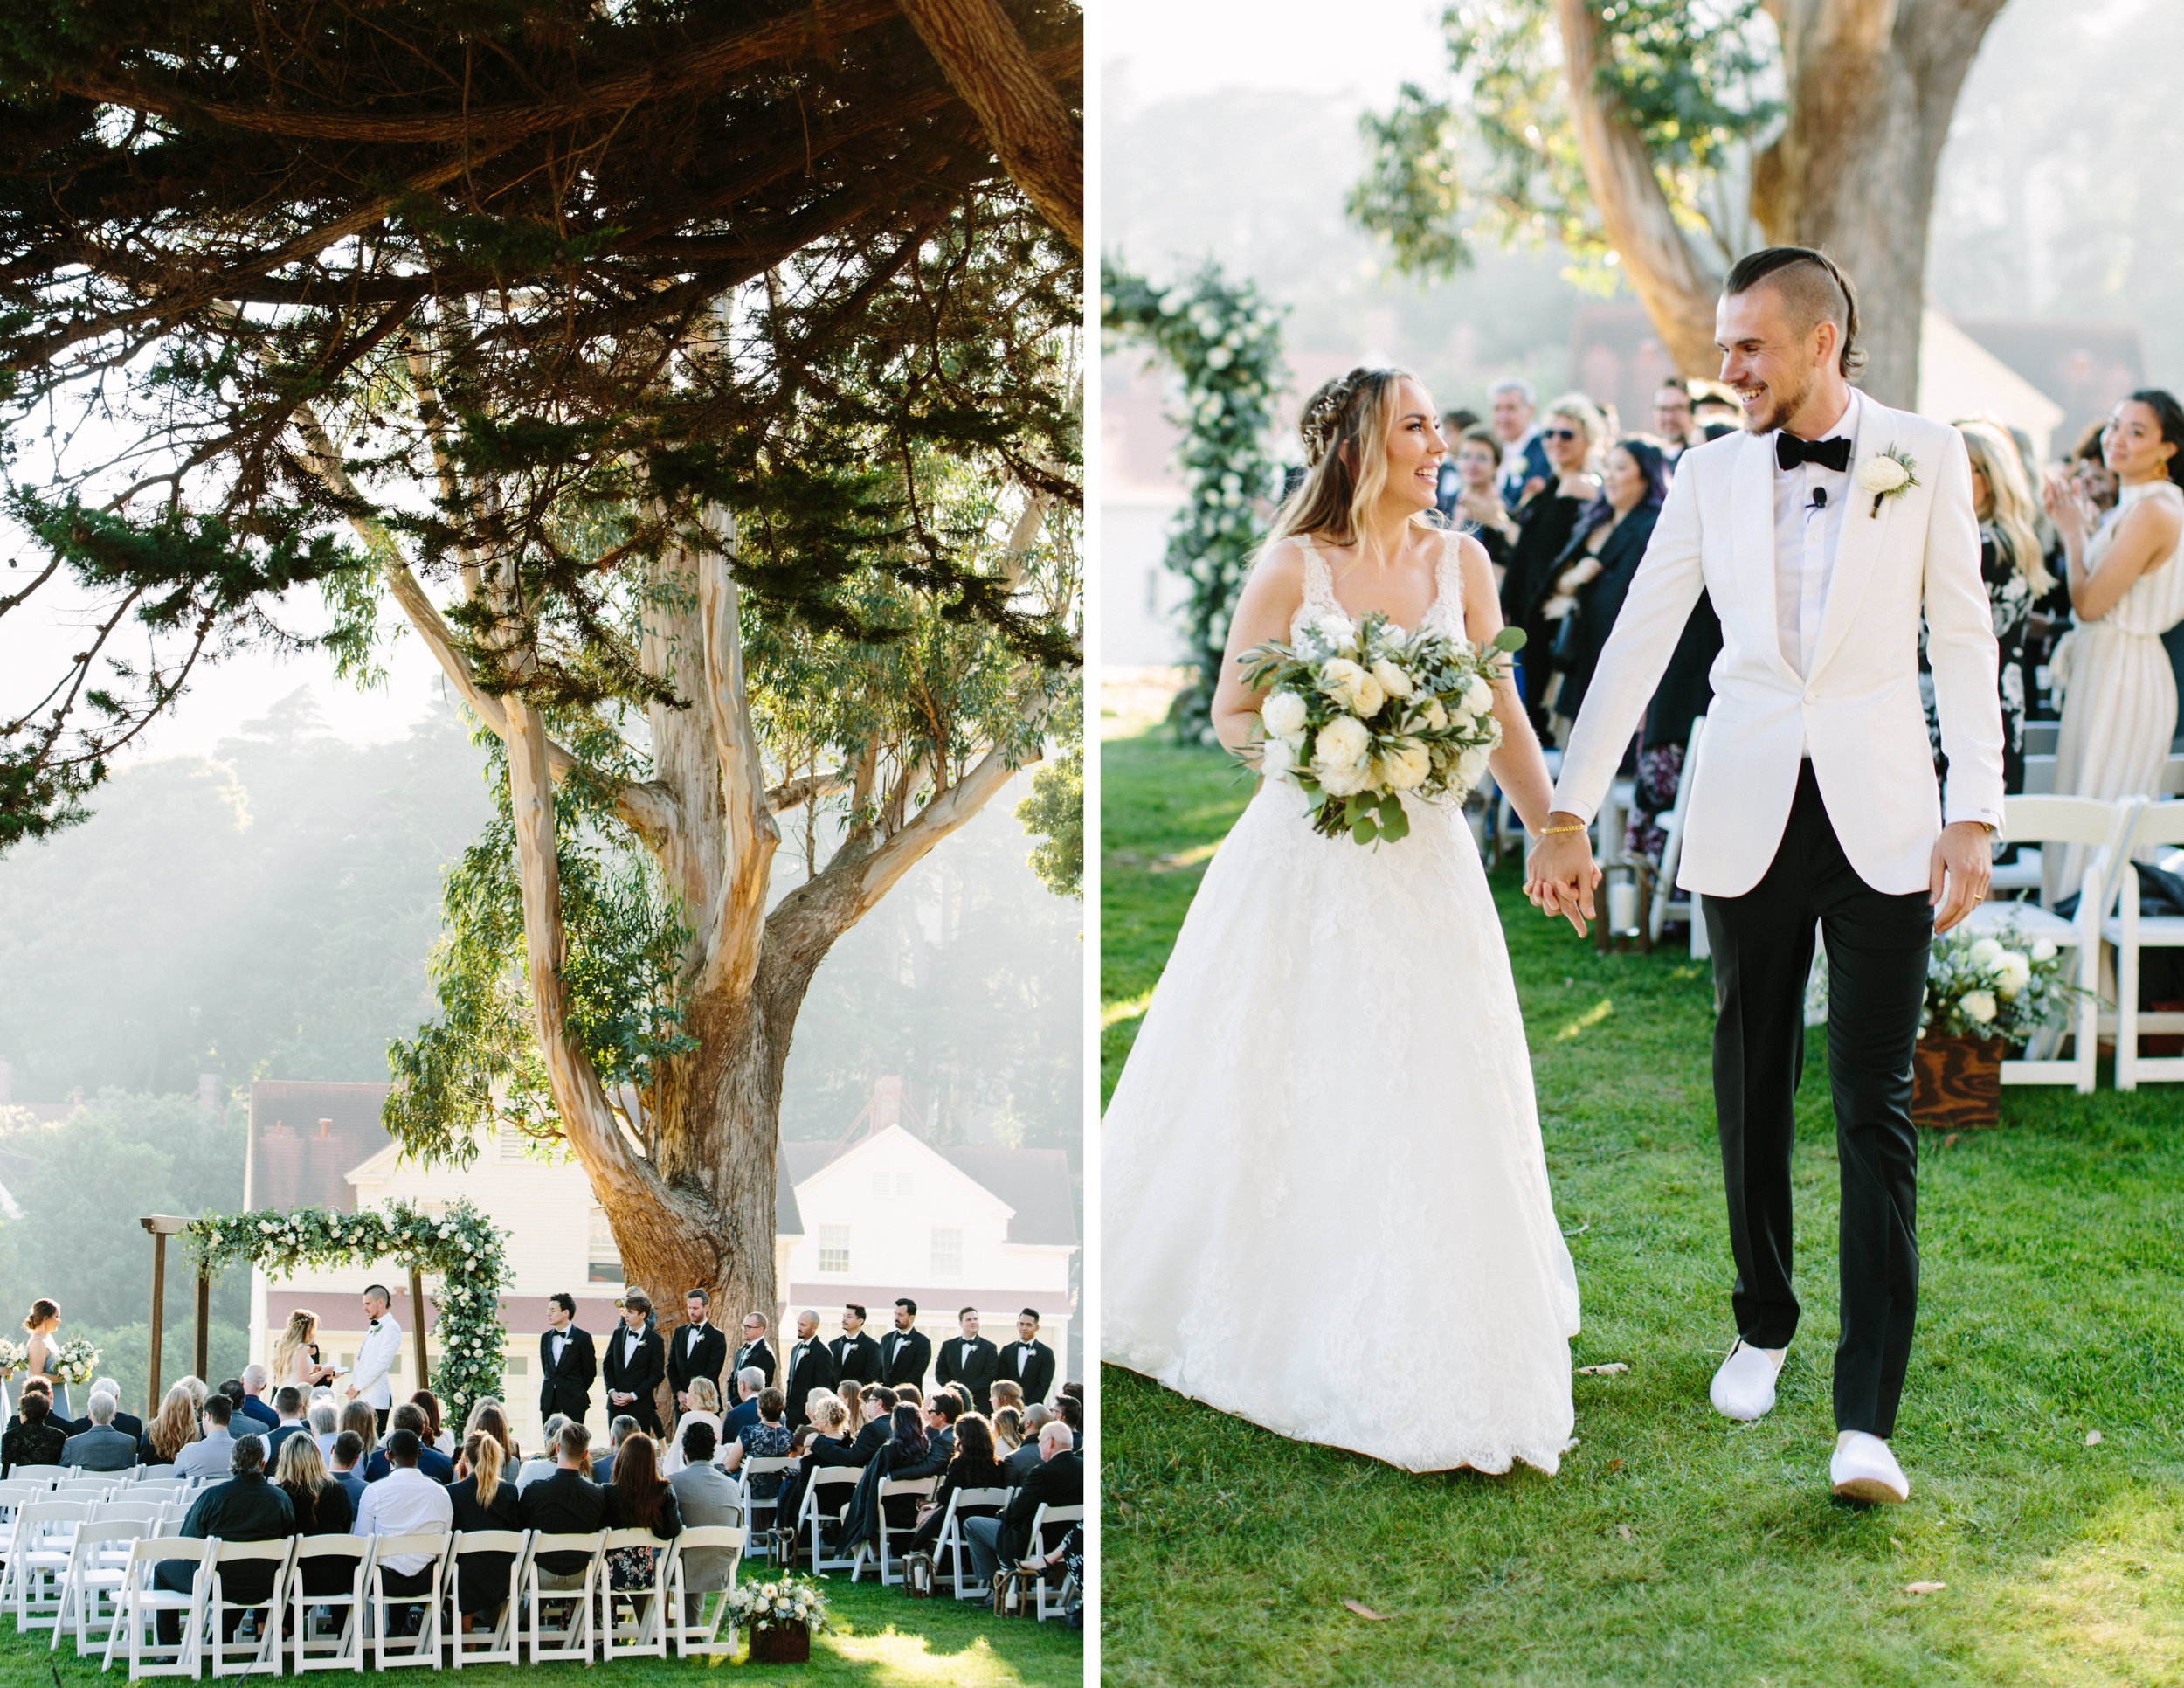 cavallo point wedding 12.jpg